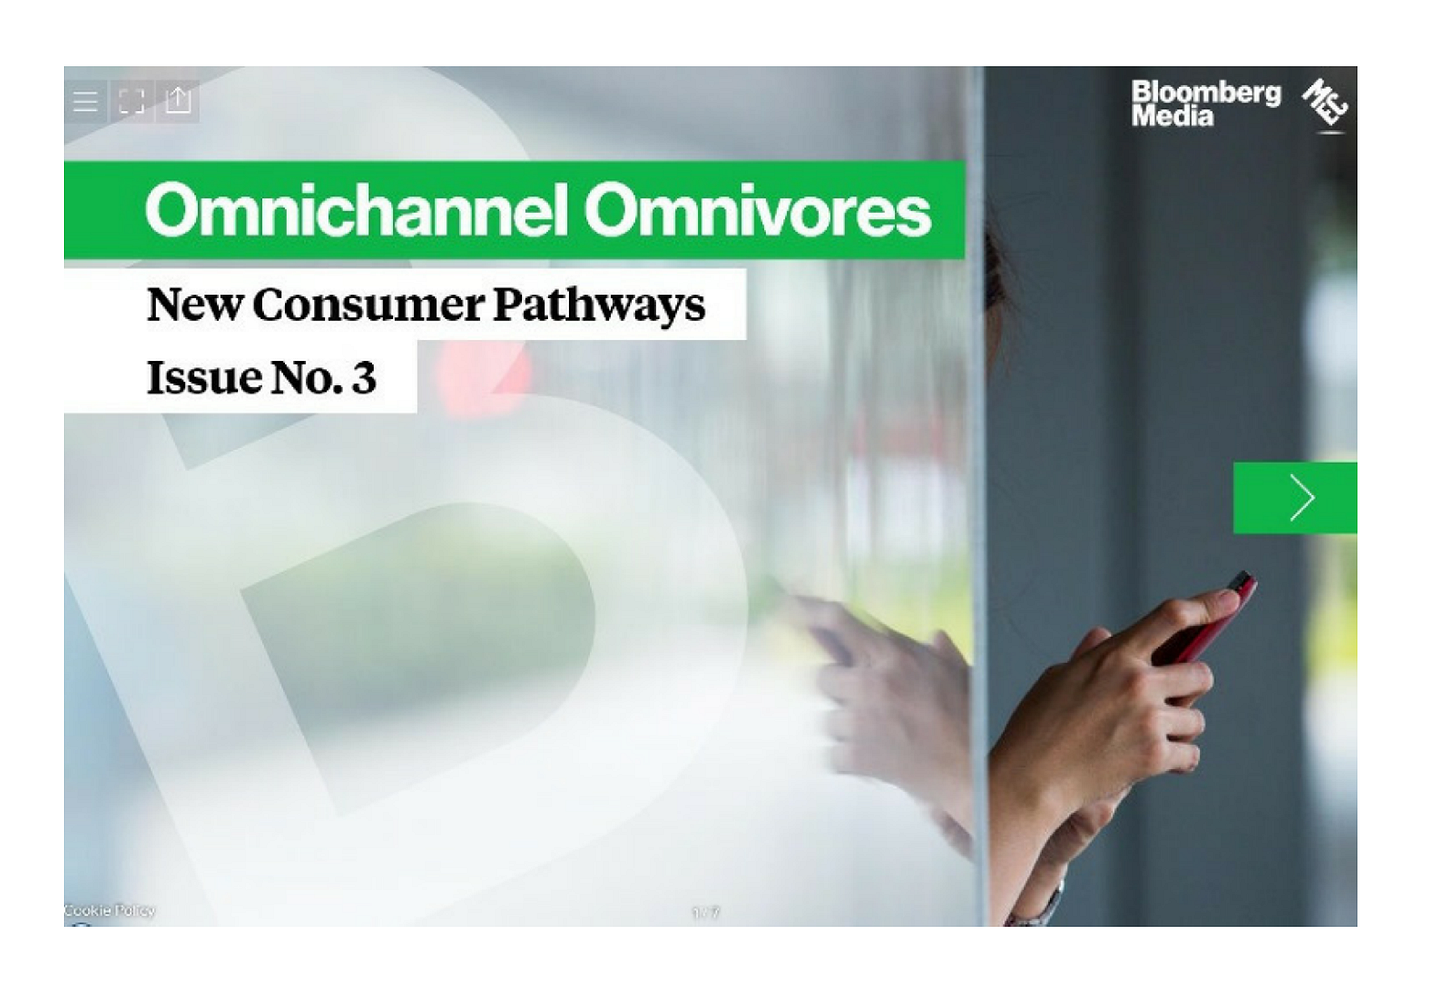 Omnichannel Omnivores: New Consumer Pathways